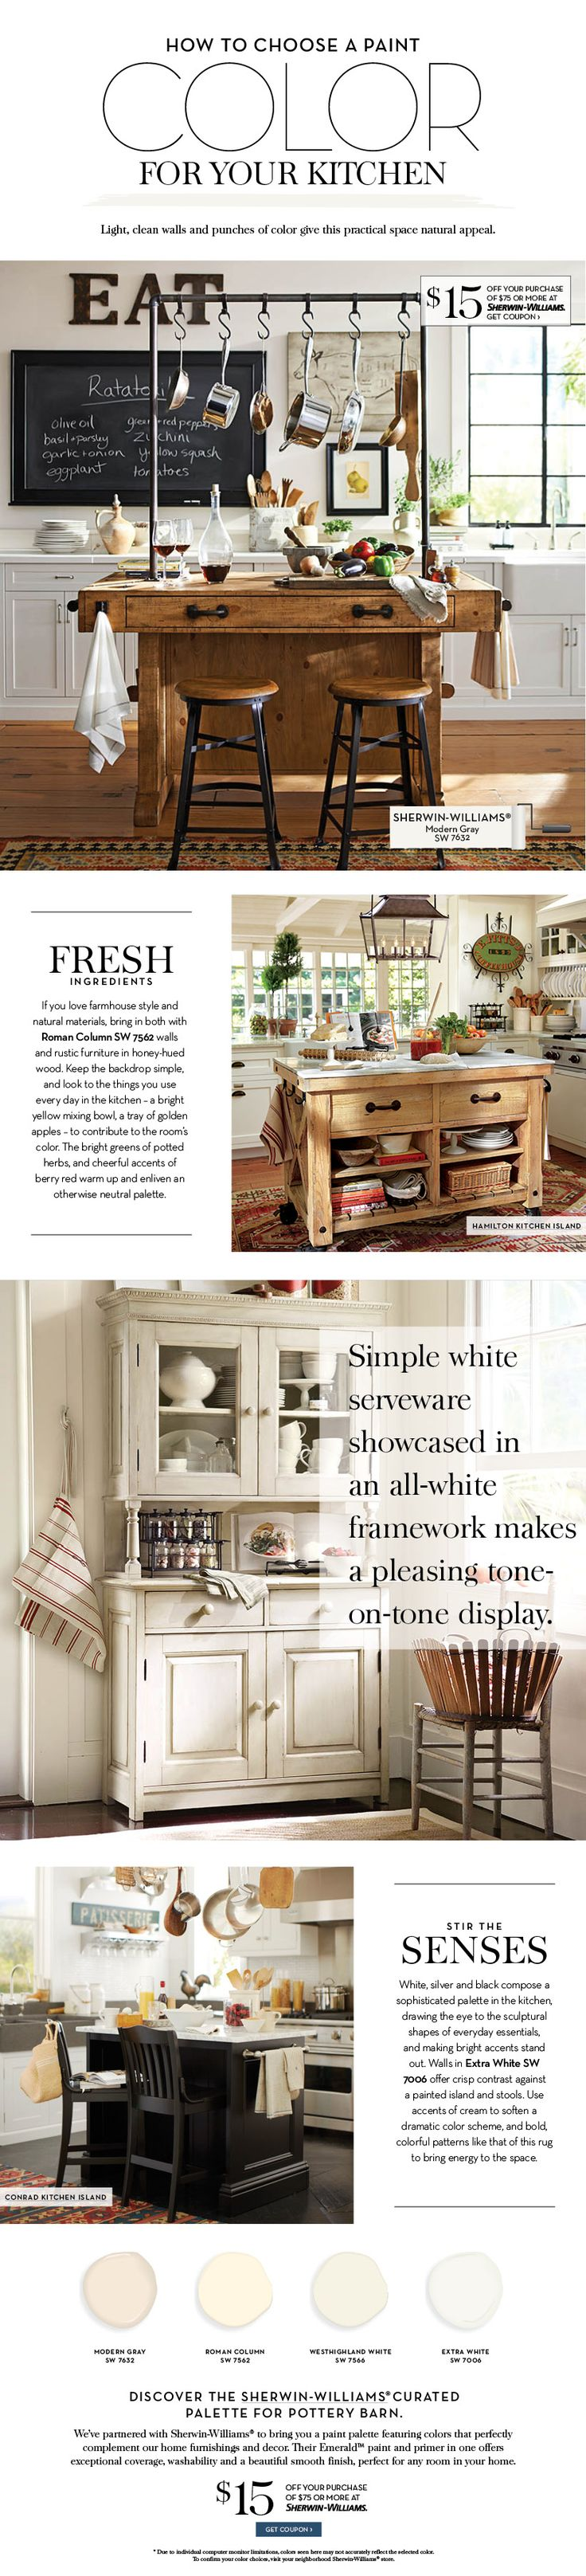 61 best butcher block images on pinterest butcher blocks how to choose a paint color for your kitchen with sherwinwilliams